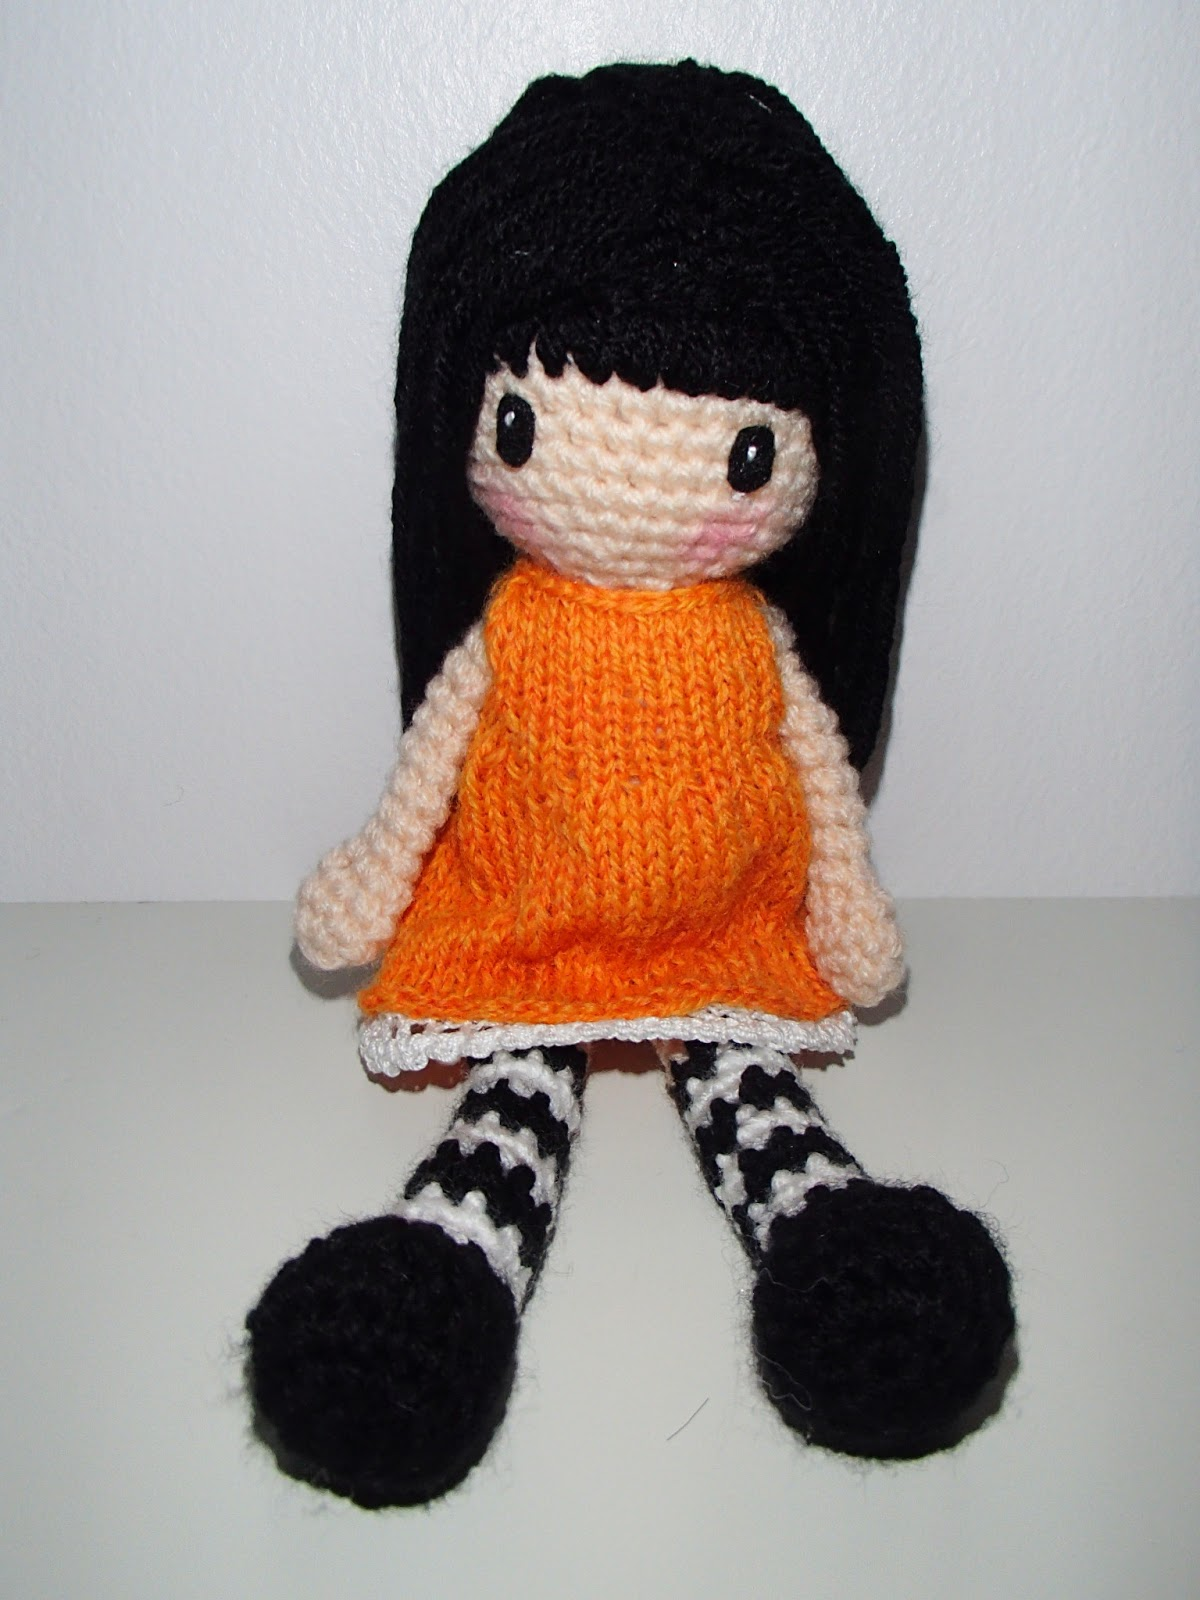 Crochet Gorjuss doll, collection crochet dolls, collectible dolls ... | 1600x1200